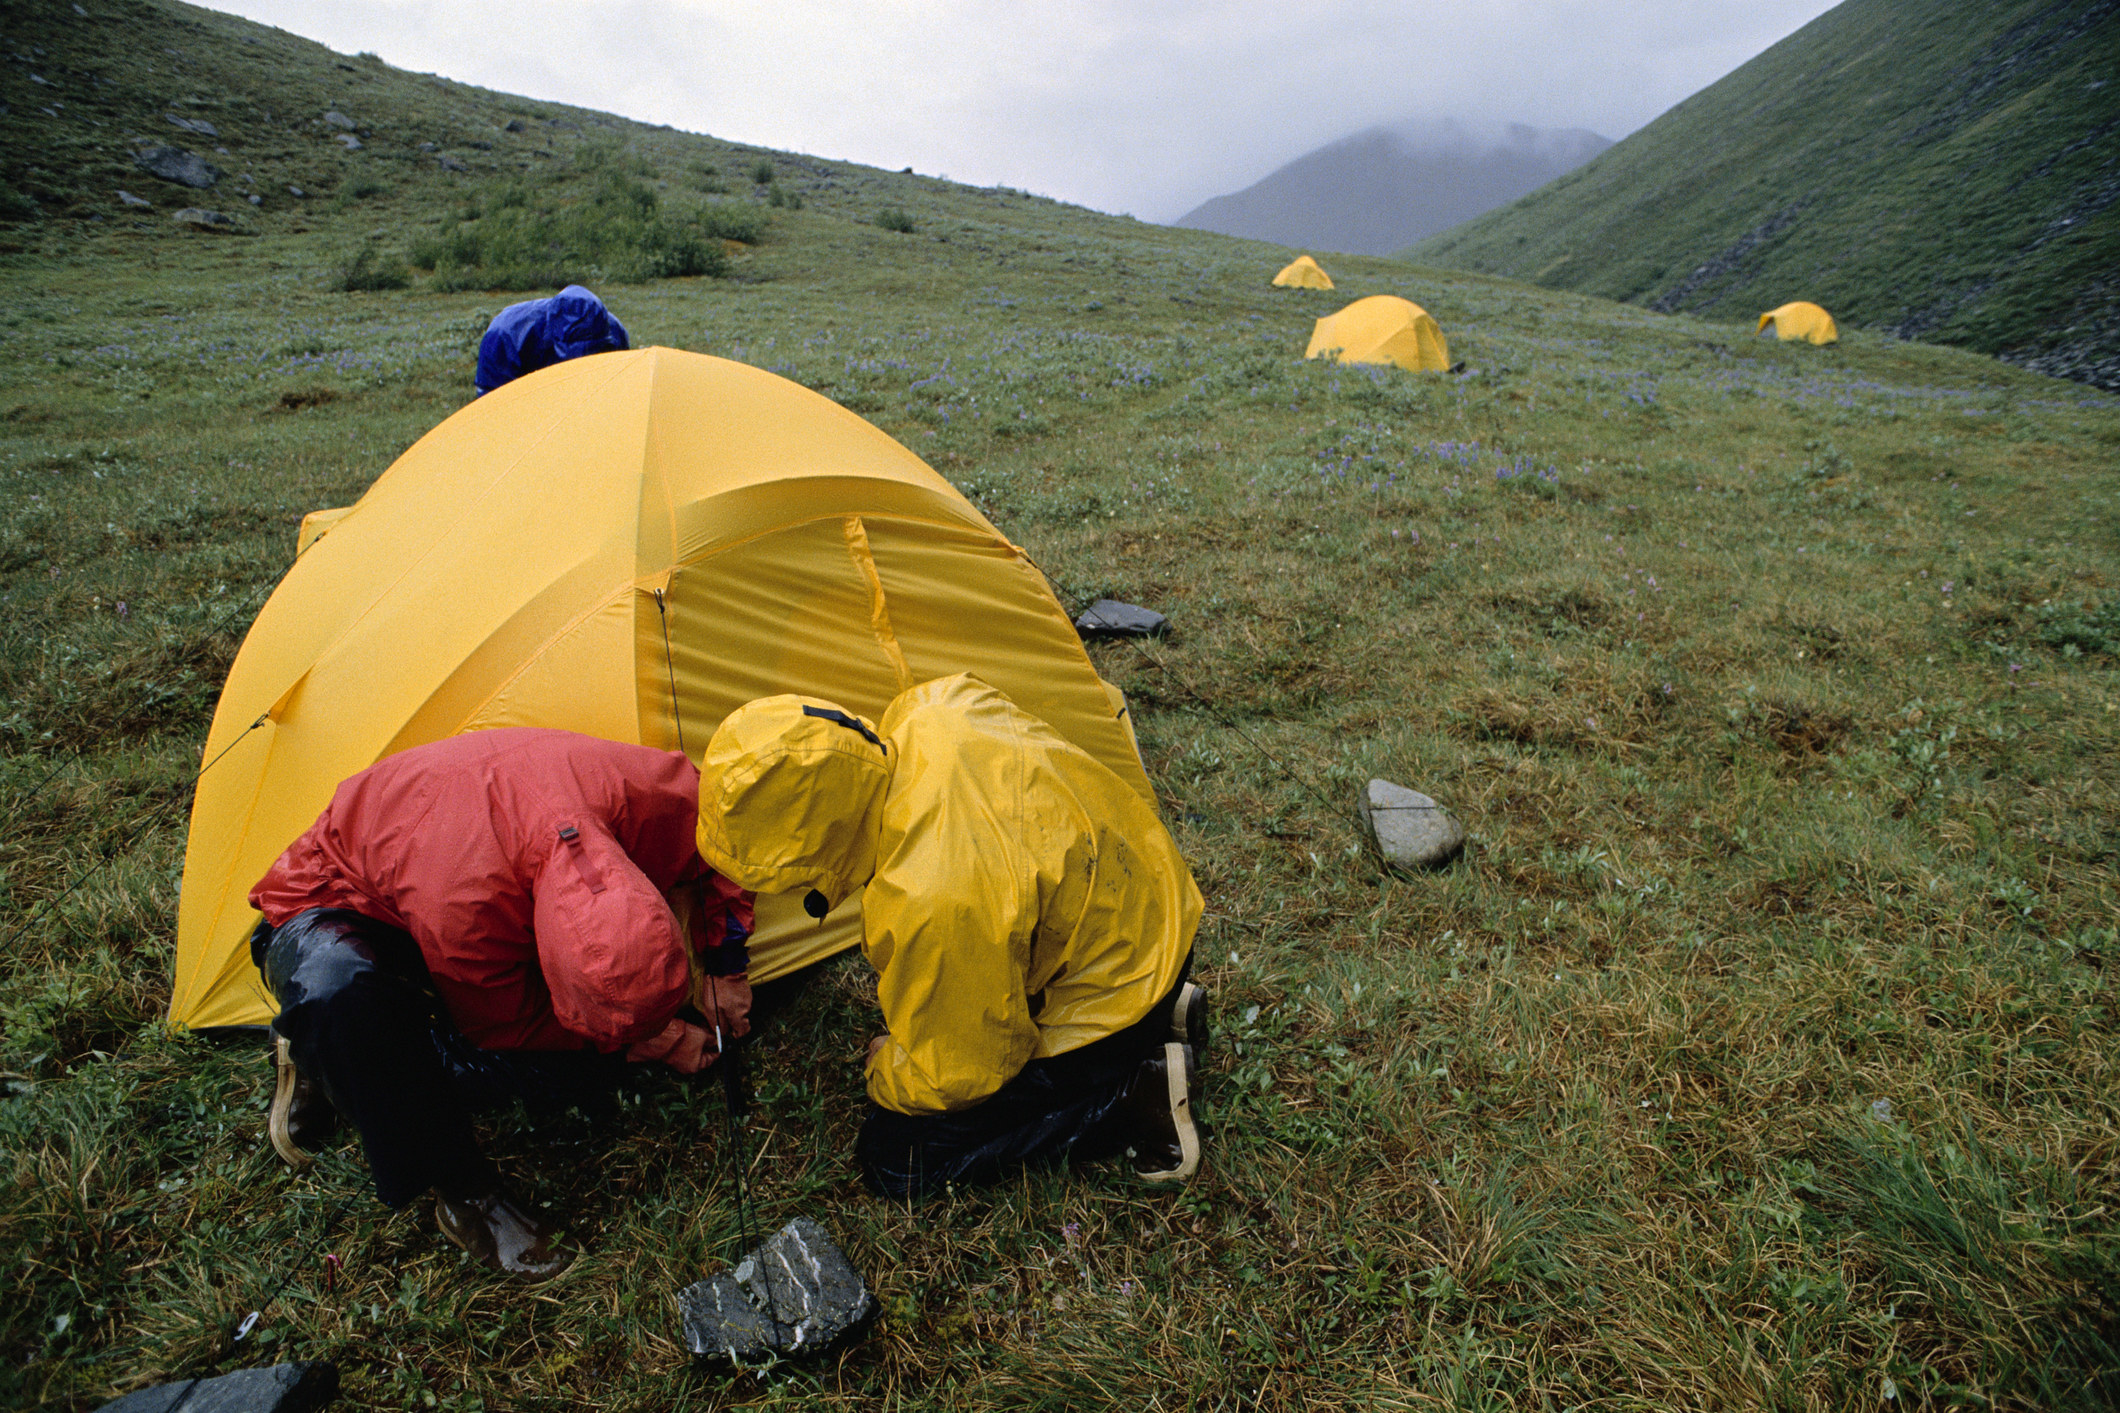 Two people pitching a tent in the rain.